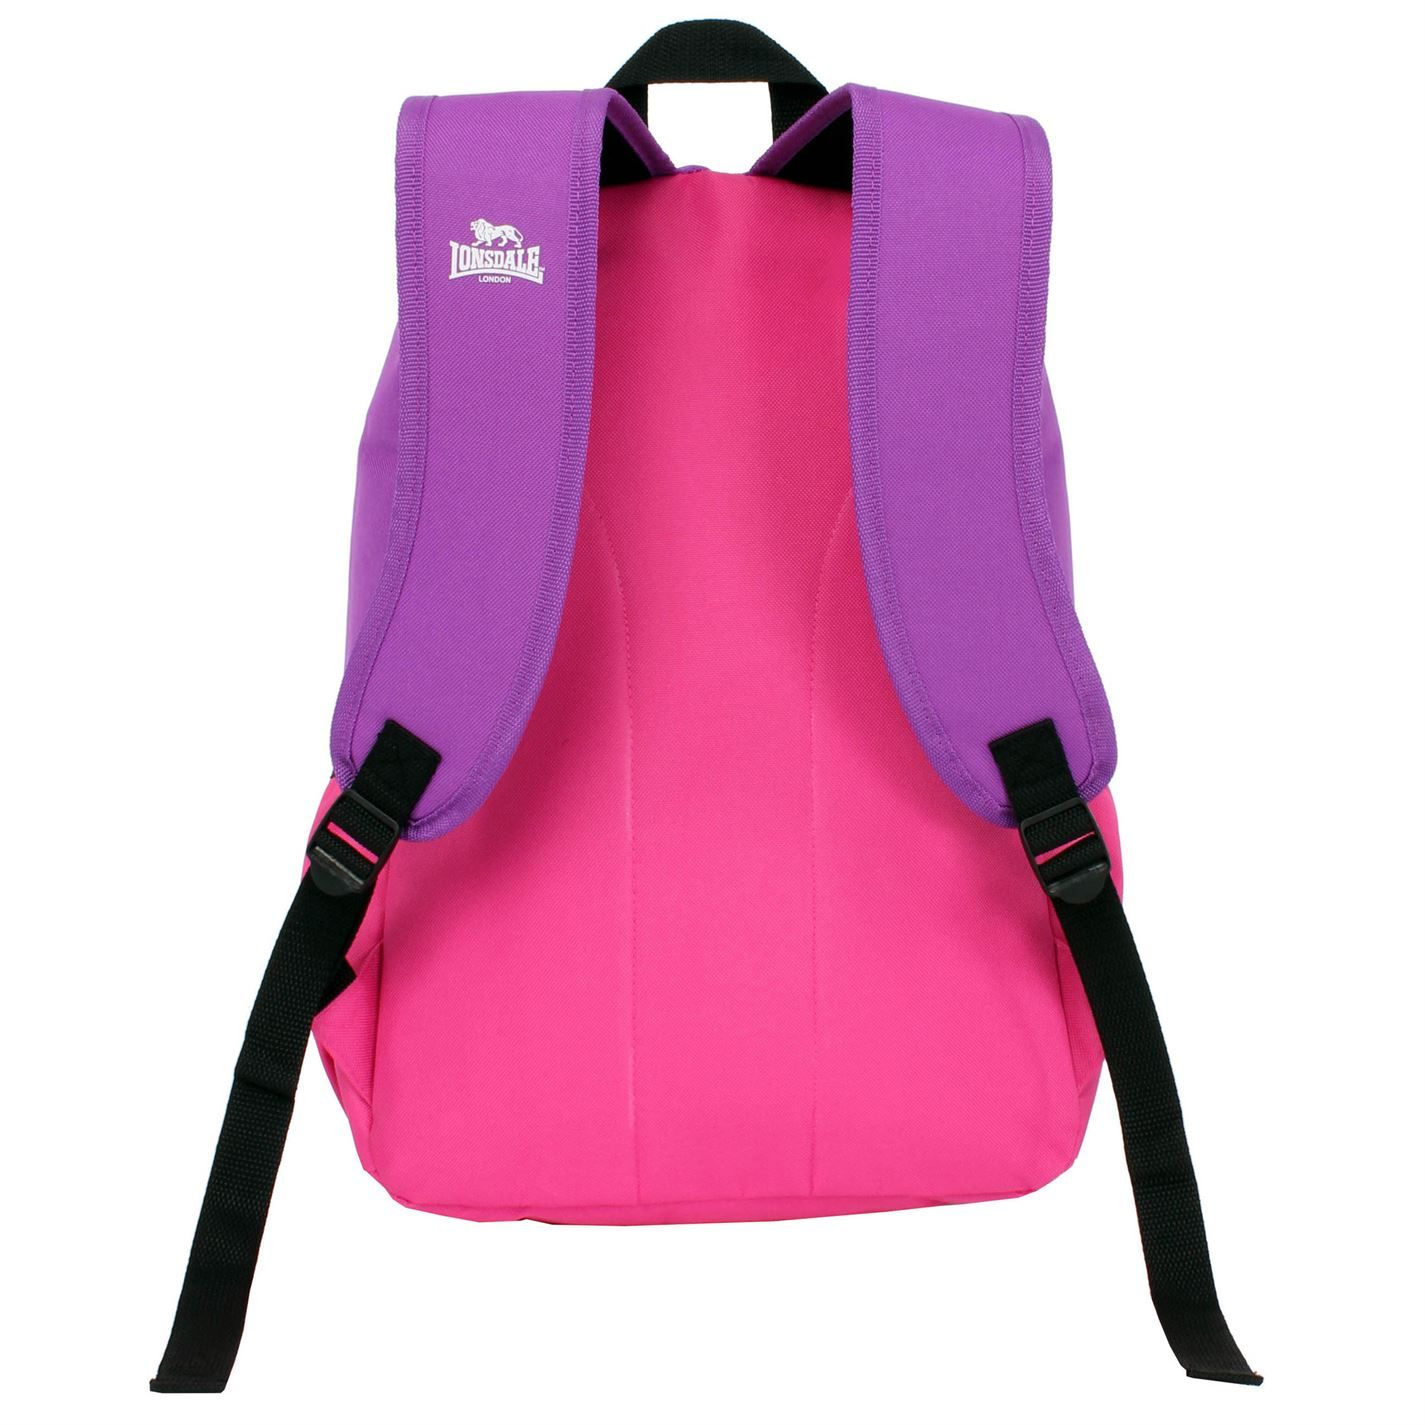 Lonsdale Pocket Back Pack Travel Luggage Everyday Casual Bag Accessories